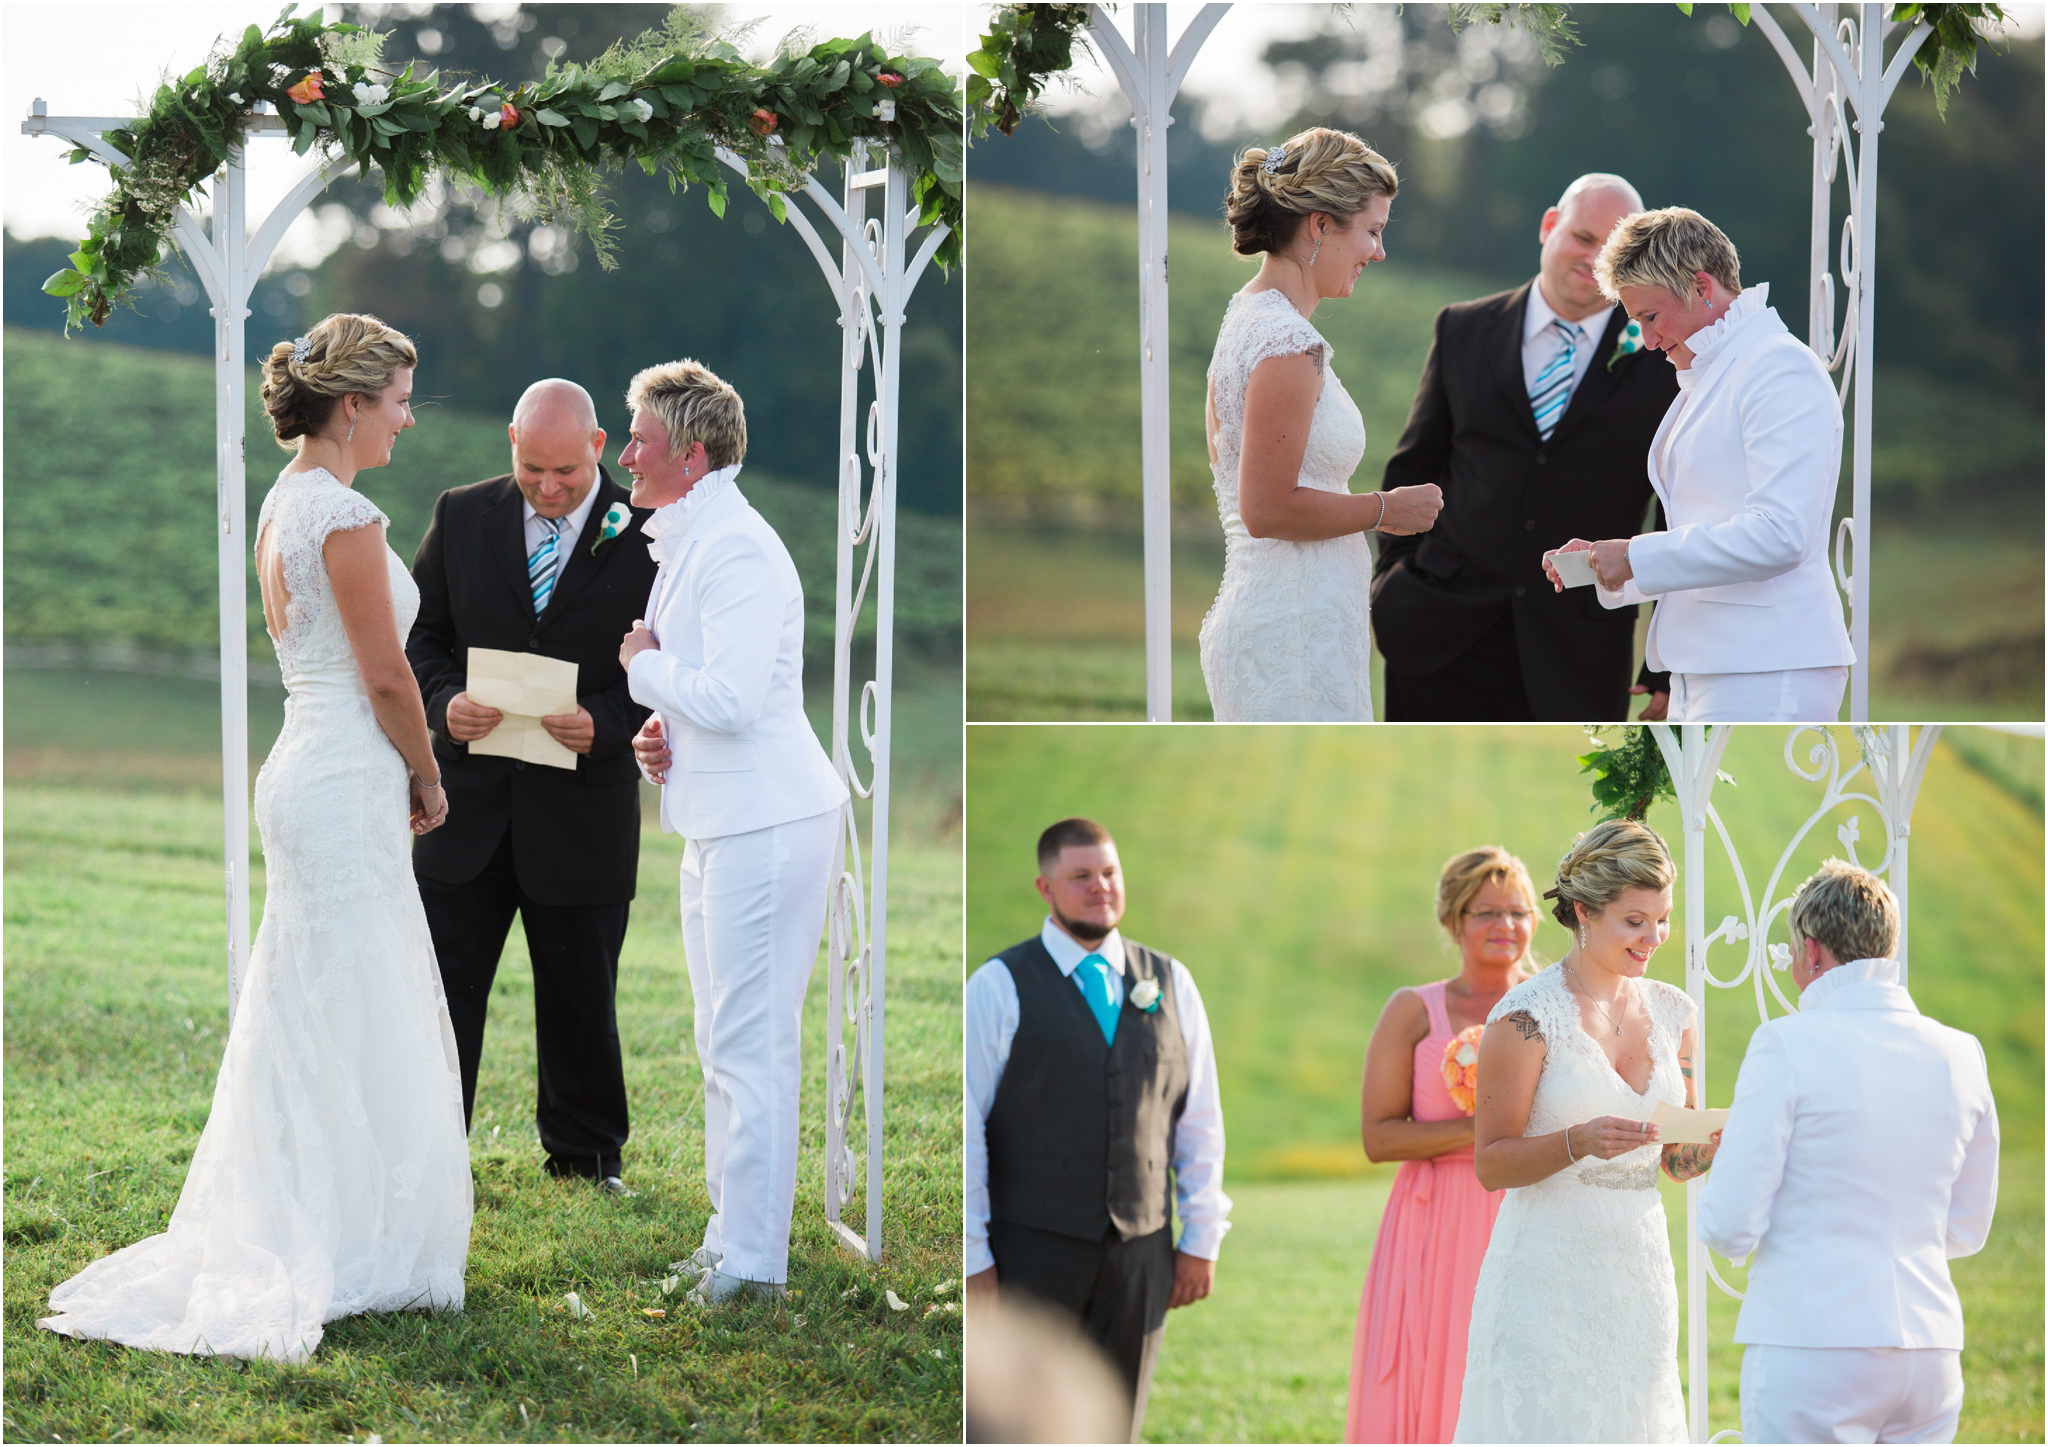 bethany-grace-photography-linganore-winecellars-same-sex-lgbtq-pink-blue-winery-outdoor-wedding-12.JPG